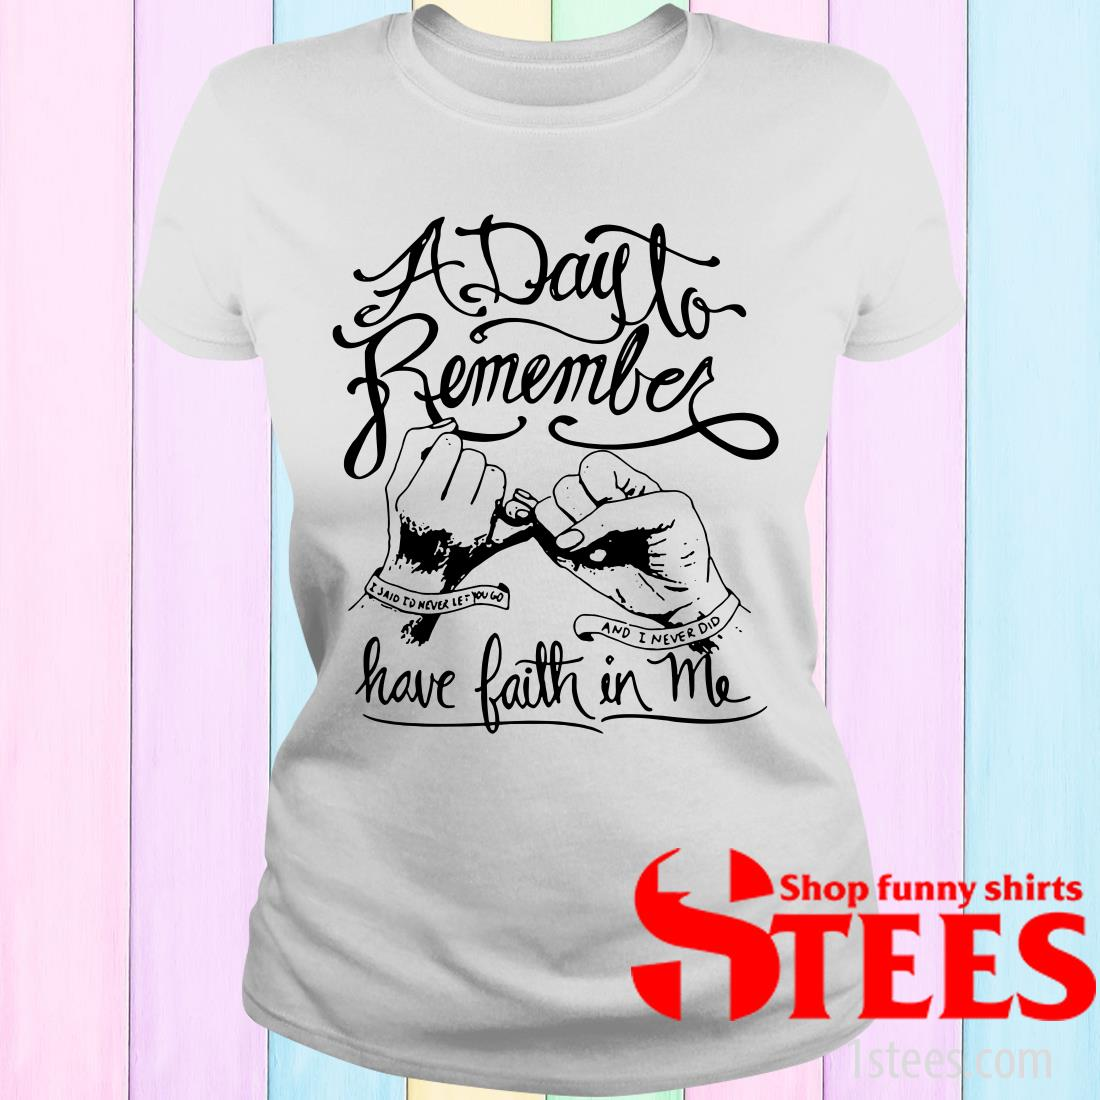 A Day To Remember Have Faith In Me Women's T-Shirt